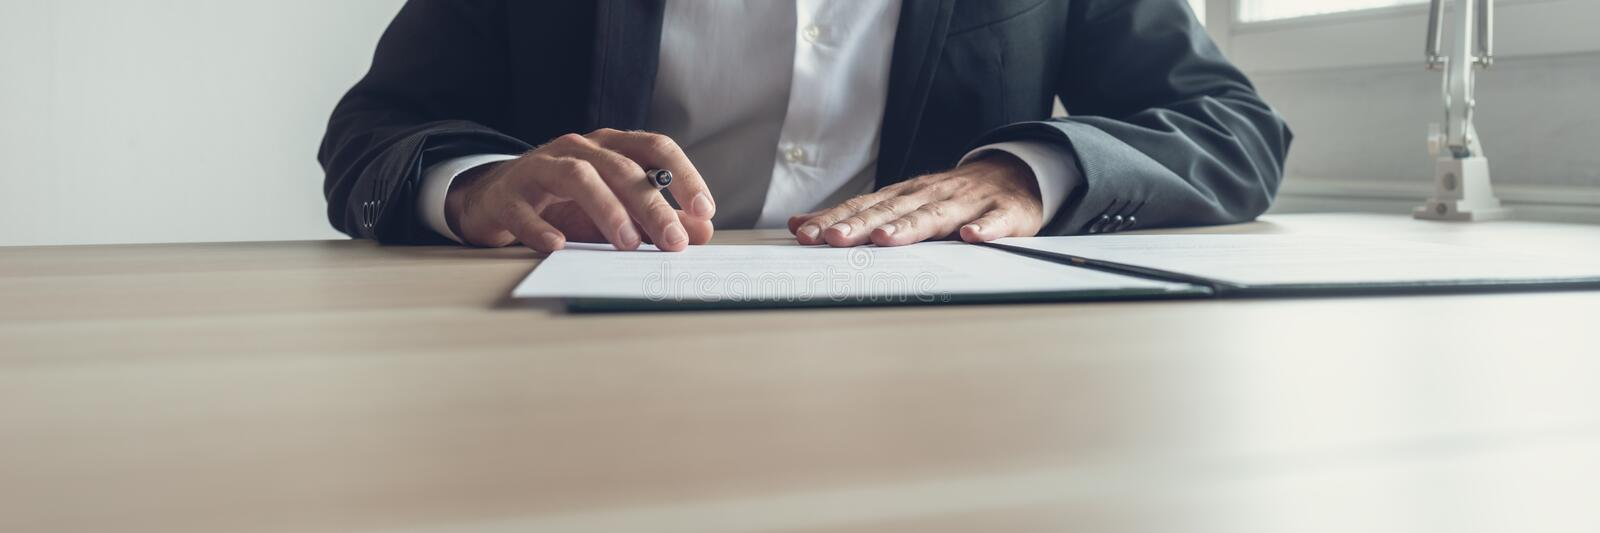 Wide view image of businessman sitting at his office desk with p royalty free stock photography